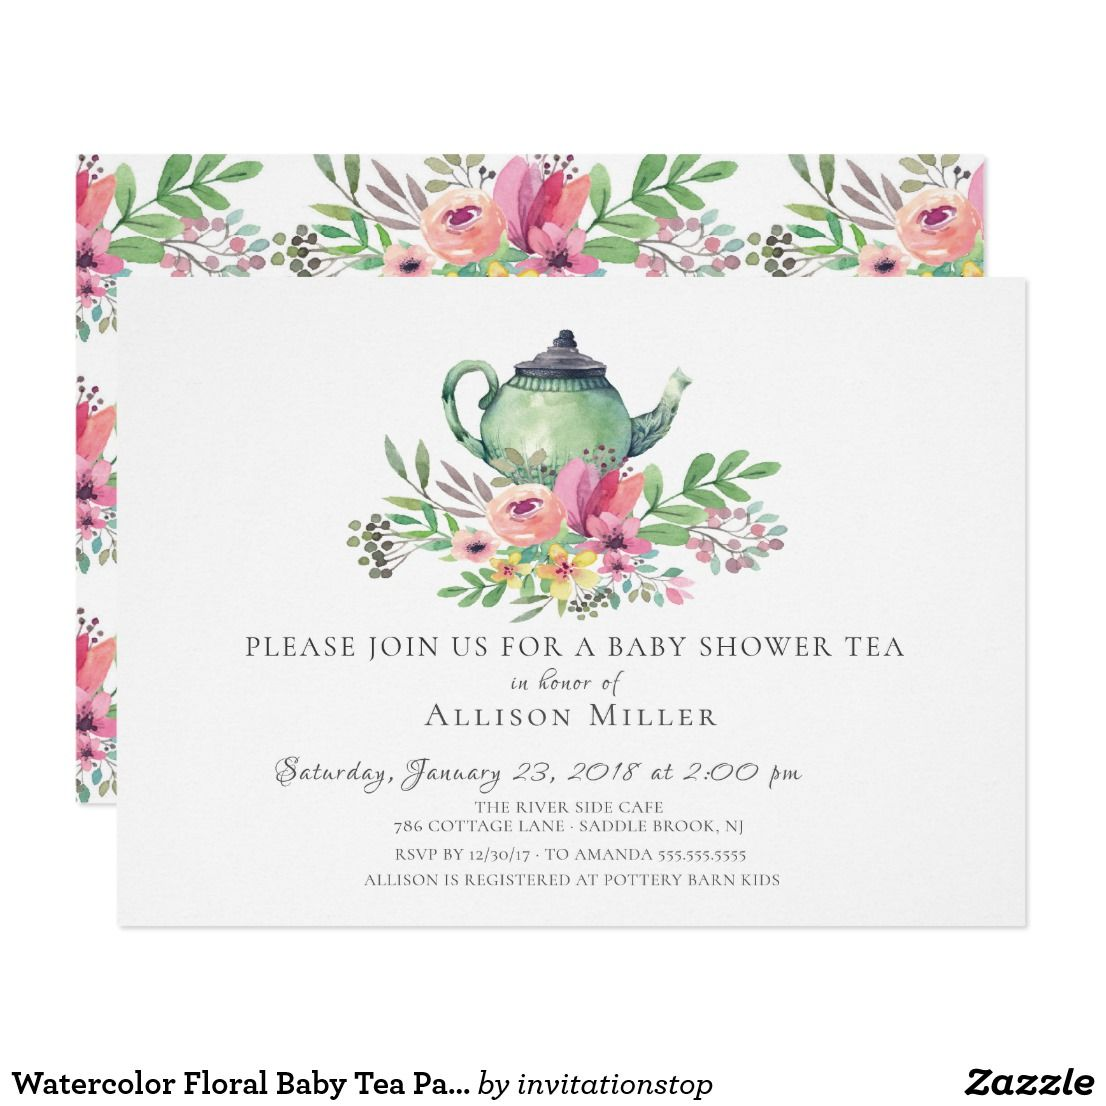 Watercolor Floral Baby Tea Party Invitation | Babies and Baby ...